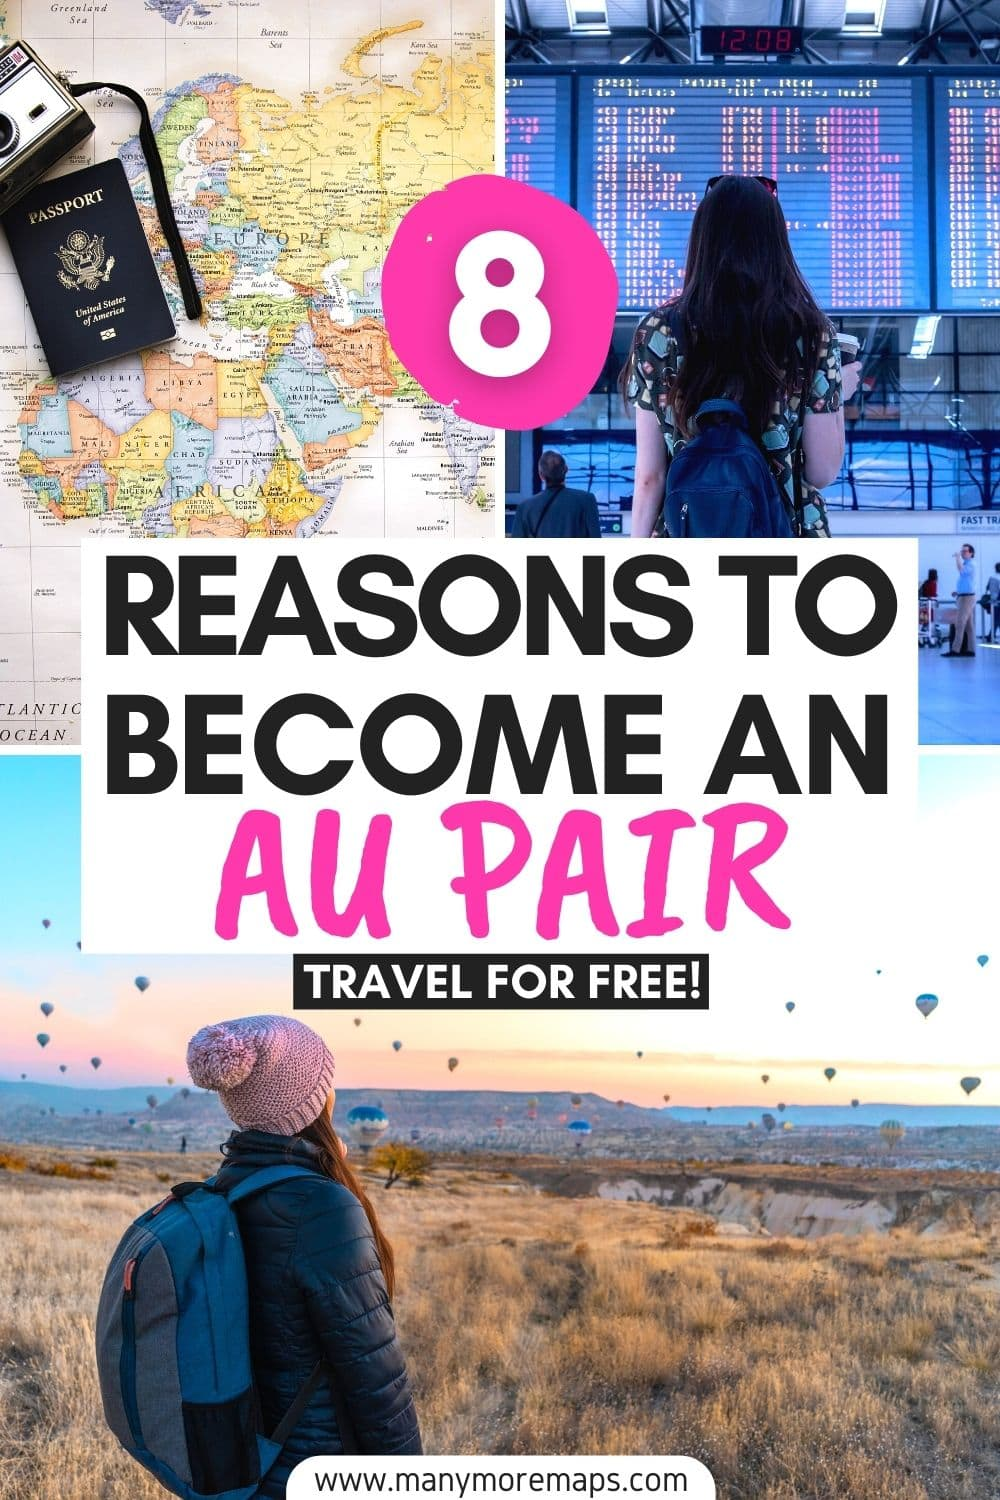 Considering becoming an au pair, but feeling nervous? Here are 8 reasons becoming an au pair is amazing! I worked as an au pair in Spain for three months, and it changed my life - here are my tried and tested tips, motivation and inspiration for becoming an au pair. After all, it's the best way to travel for free or with no money. Au pair aesthetic, au pair packing list, au pair activities, how to become an au pair